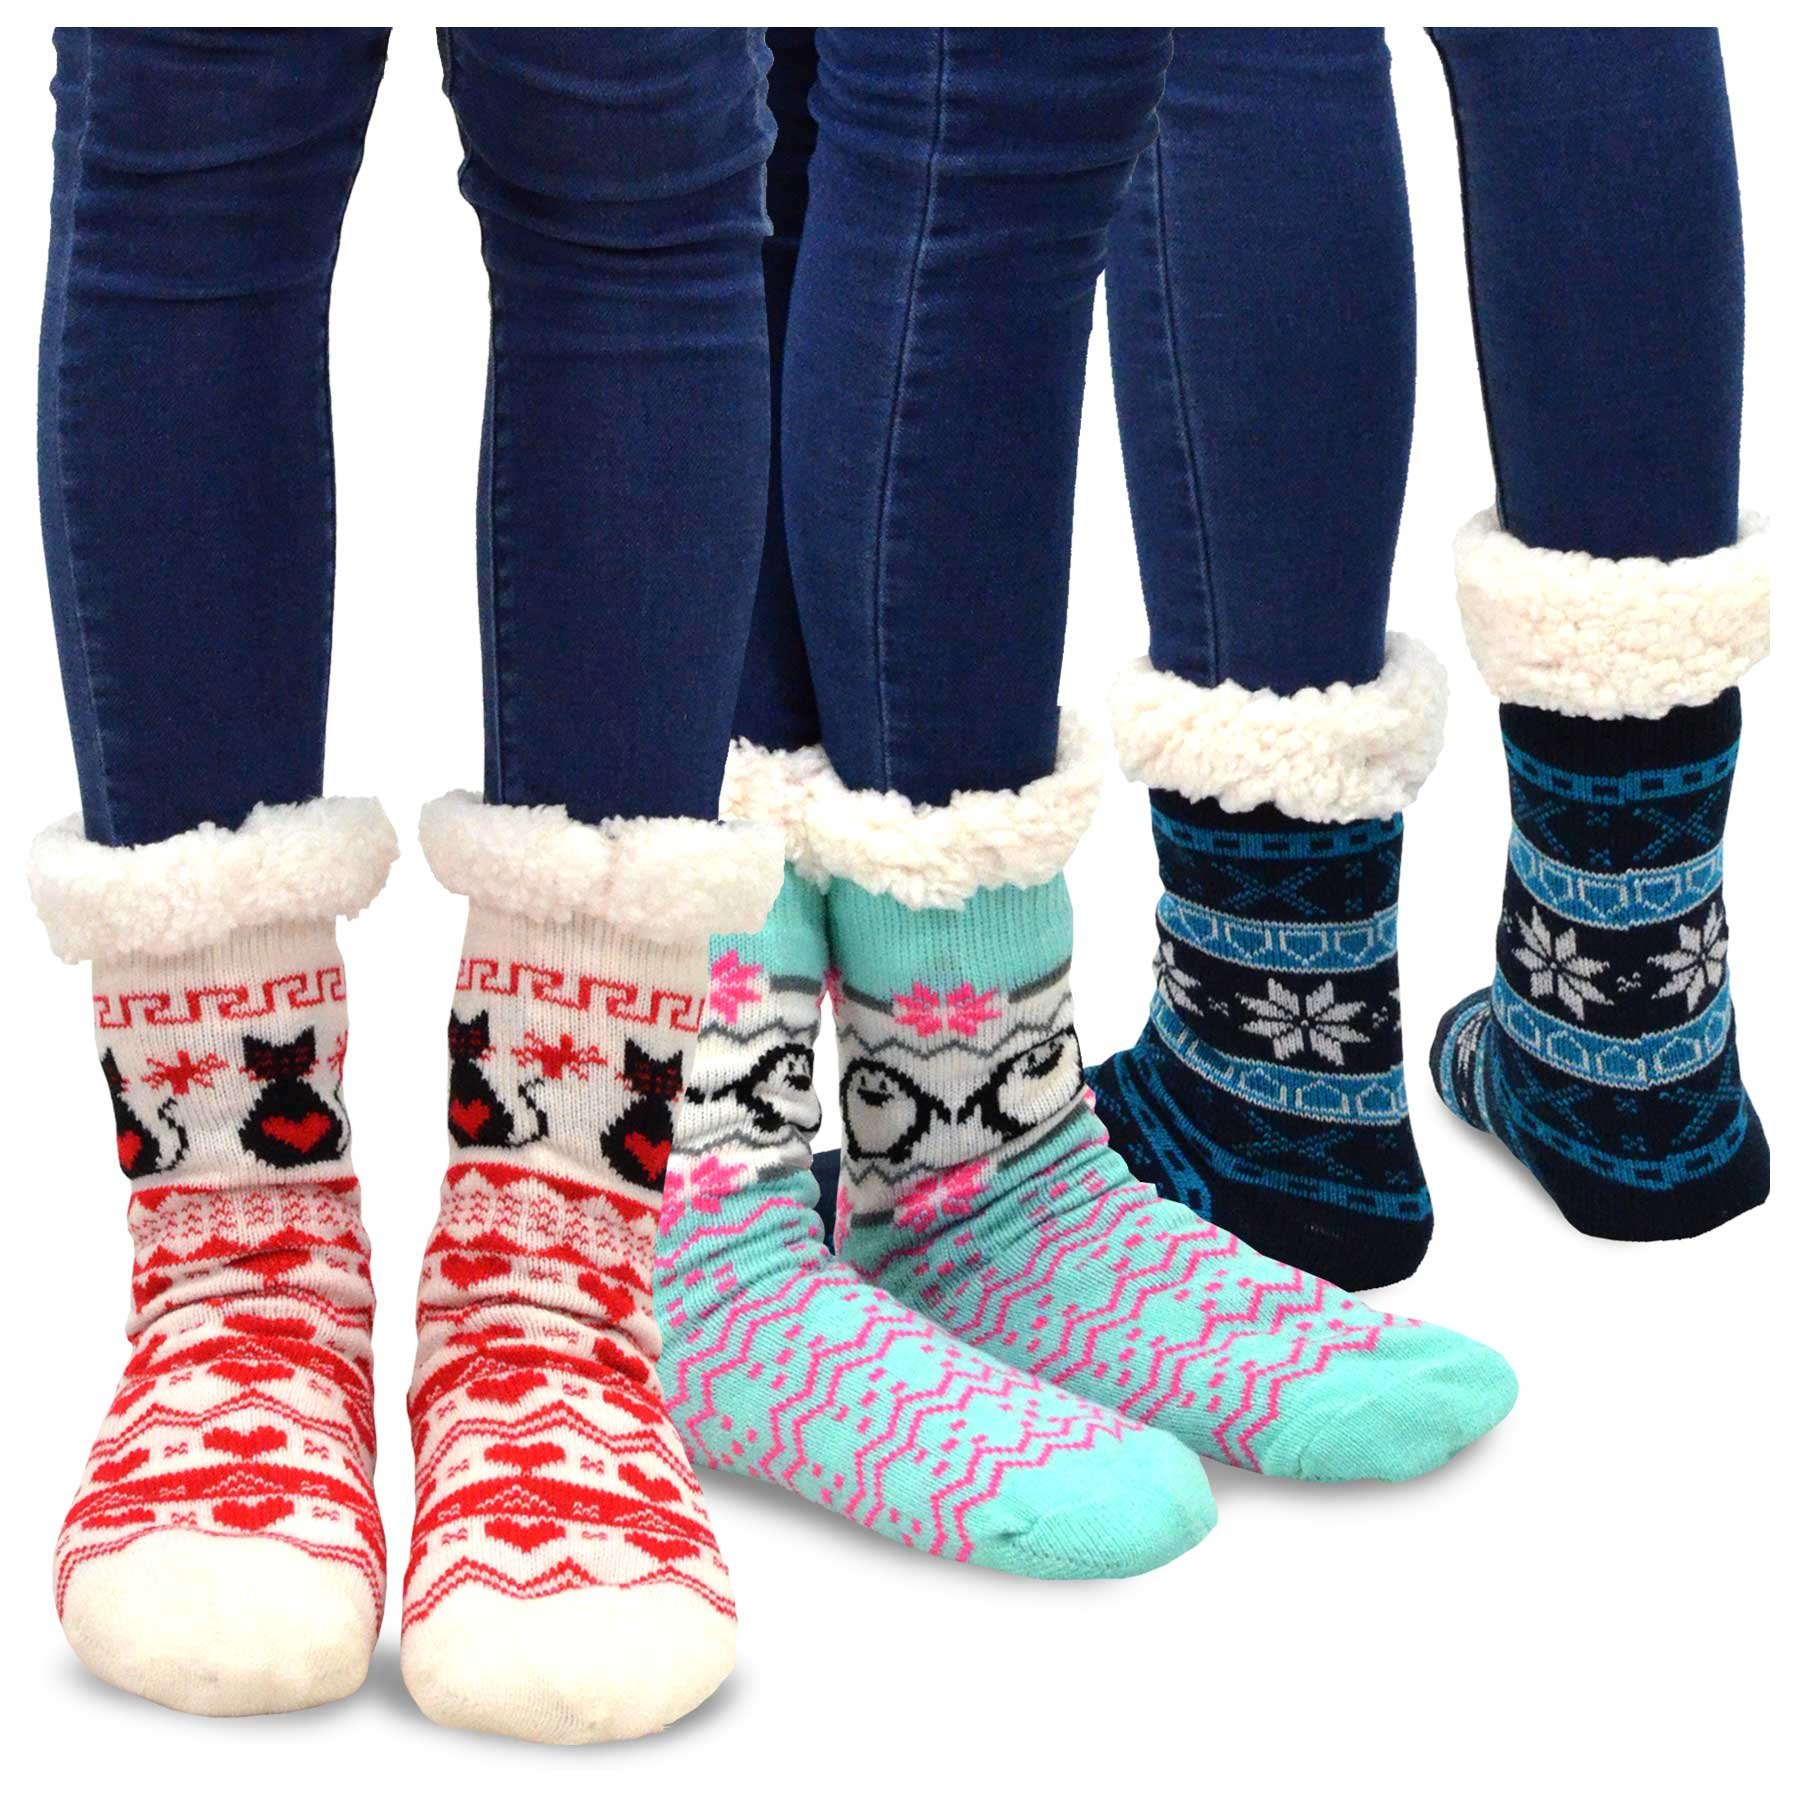 Teehee Womens Soft Premium Thermal Double Layer Crew Socks 3-Pack (Assorted)